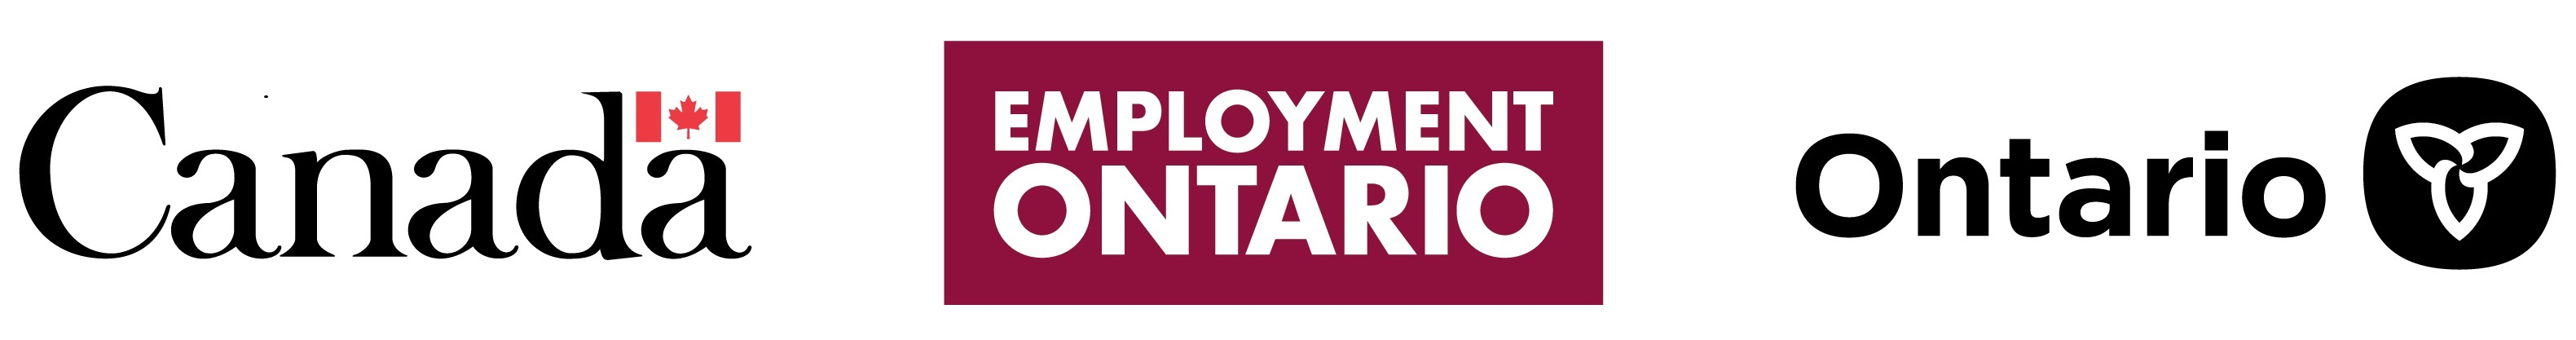 Government of Canada, Employment Ontario, and Ontario Government logos